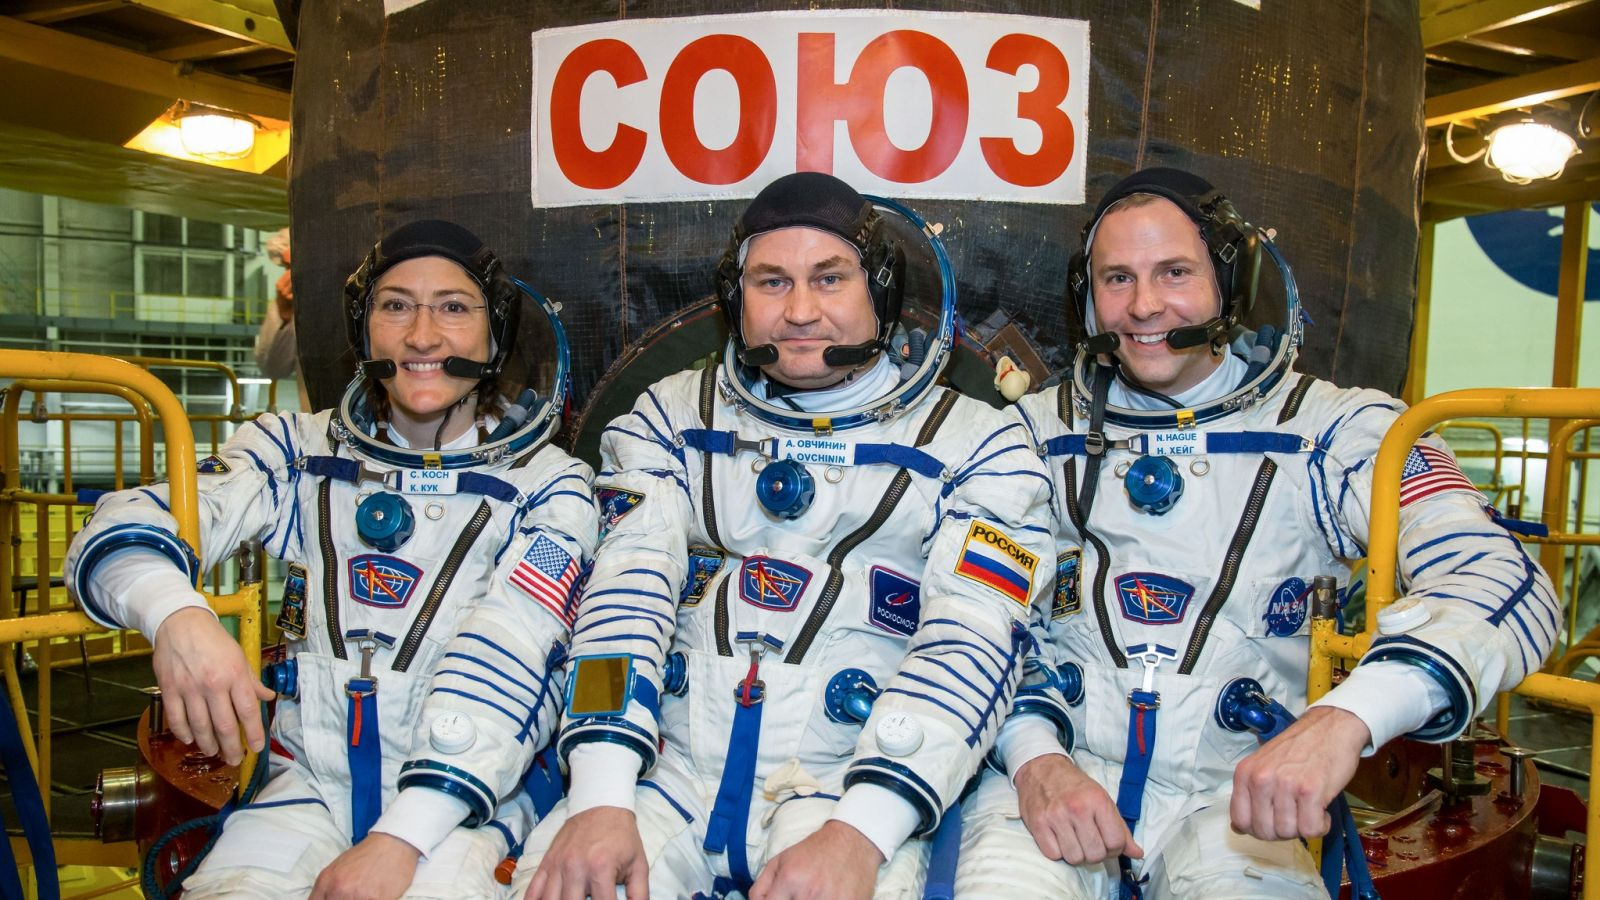 The crew of Soyuz MS-12, which includes NASA astronaut Christina Koch, left, Russian cosmonaut Aleksey Ovchinin, center, and NASA astronaut Nick Hague, are set to fly to the International Space Station on March 14, 2019. Photo Credit: Victor Zelentsov / NASA